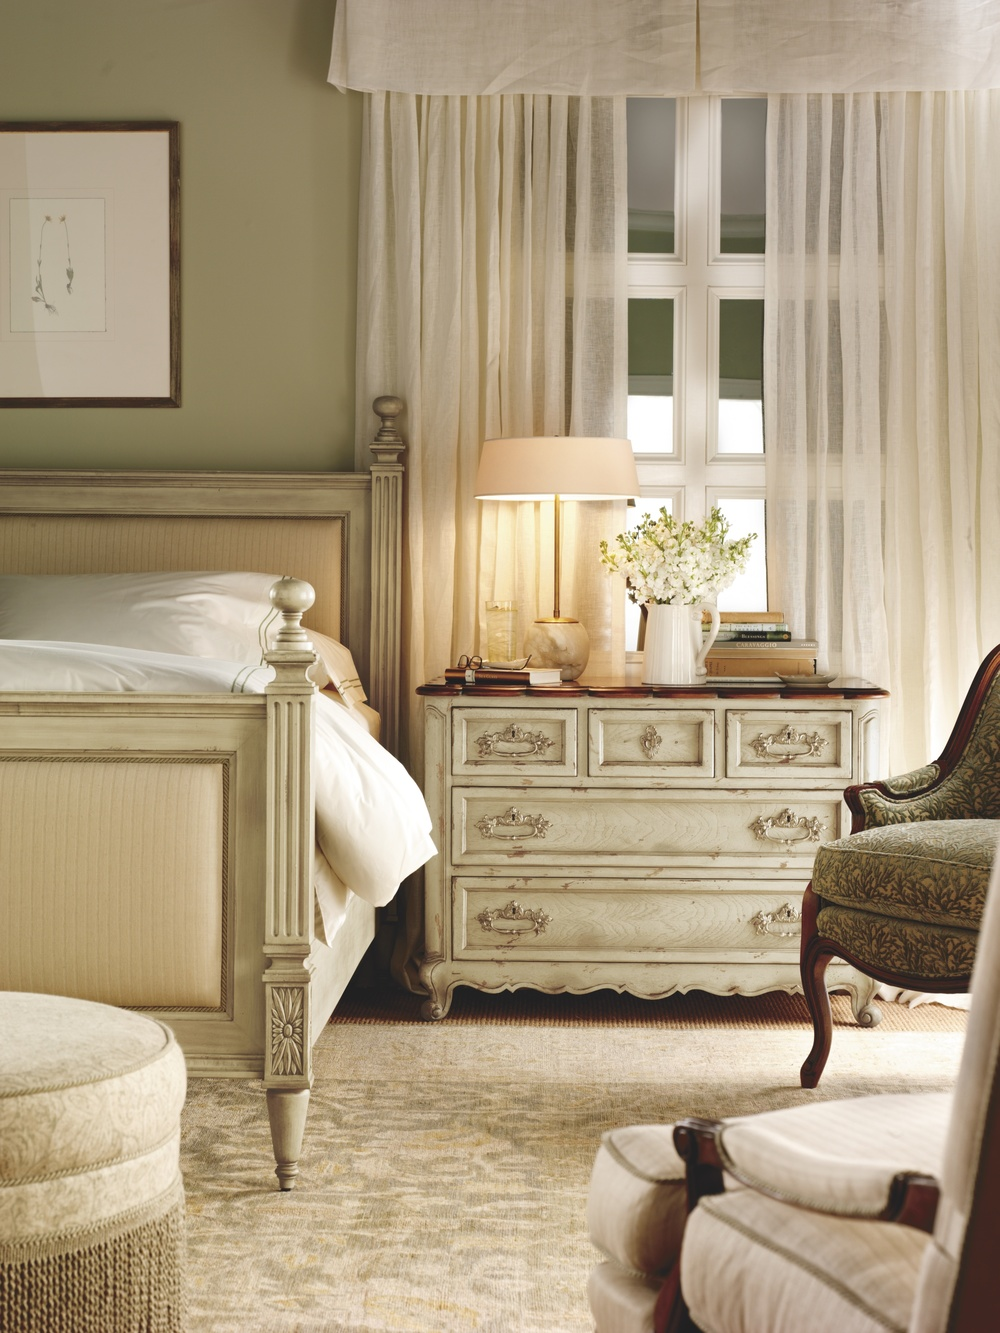 Hickory Chair - Left Bank Queen Bed